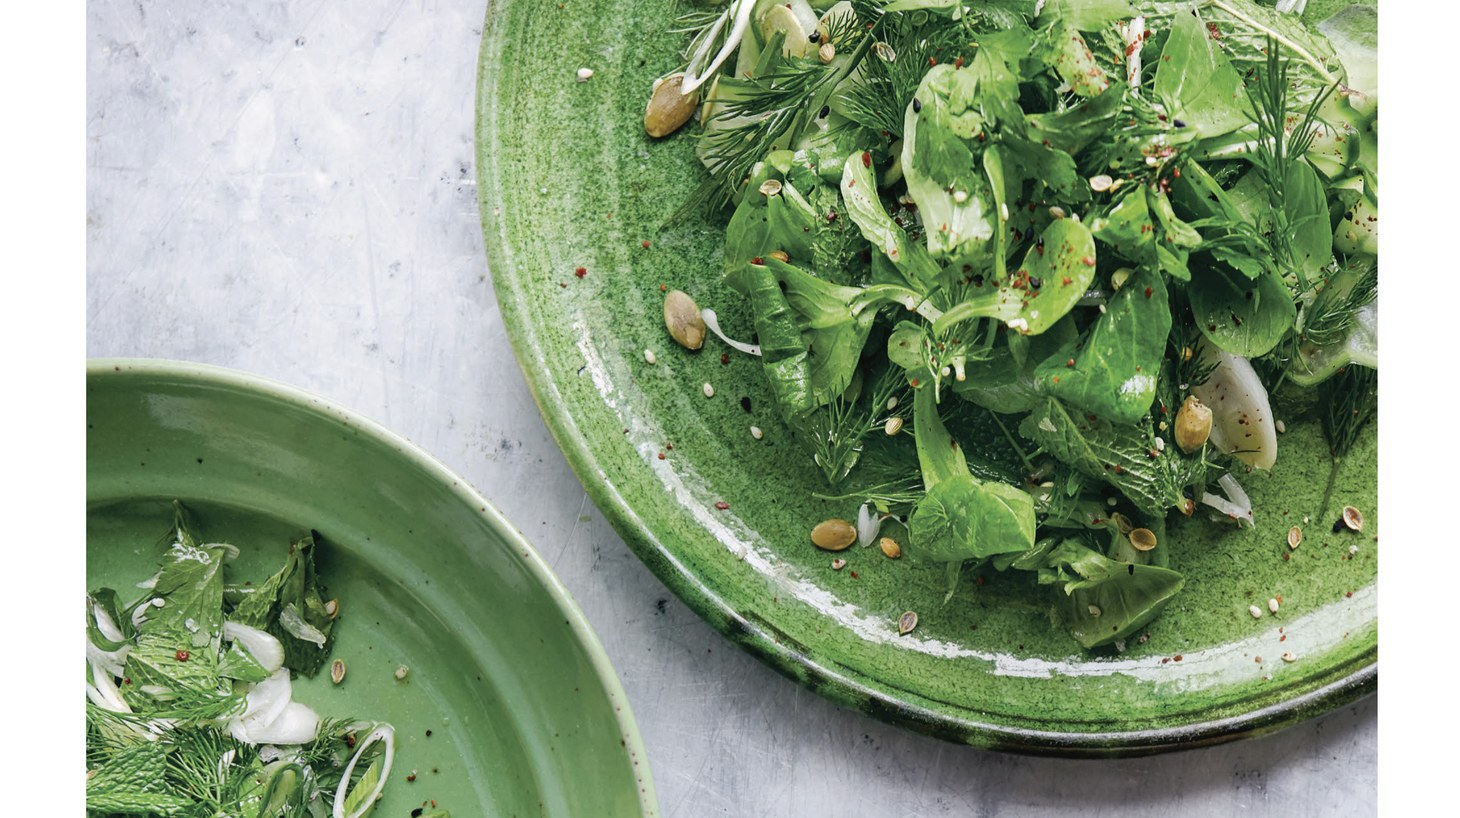 Chef Sami Tamimi suggests Spicy Herb Salad with Pickled Cucumbers to accompany grilled dishes this summer.